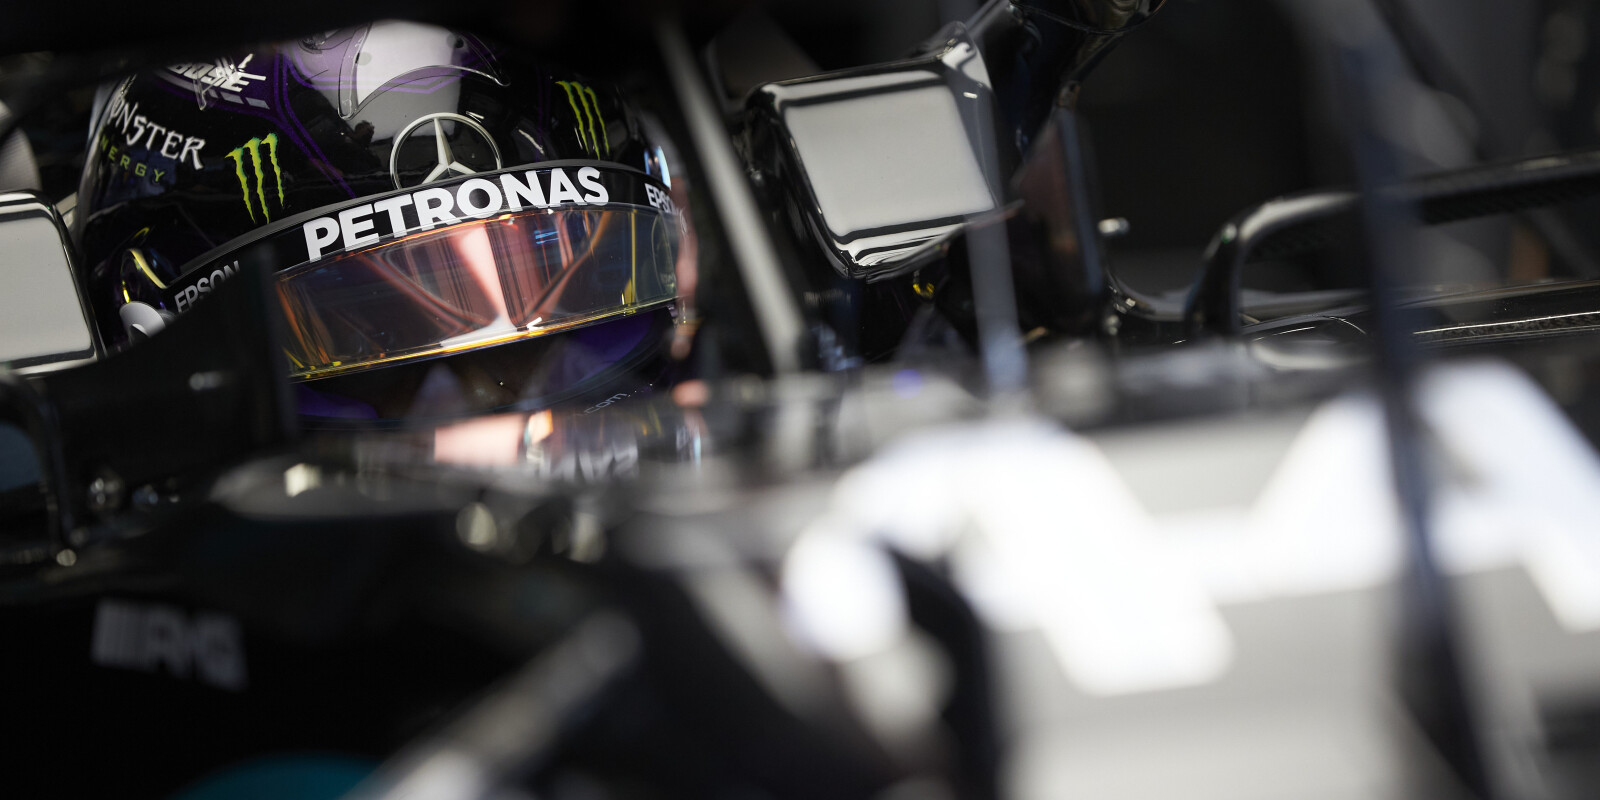 Images from the 2020 F1 Spanish Grand Prix